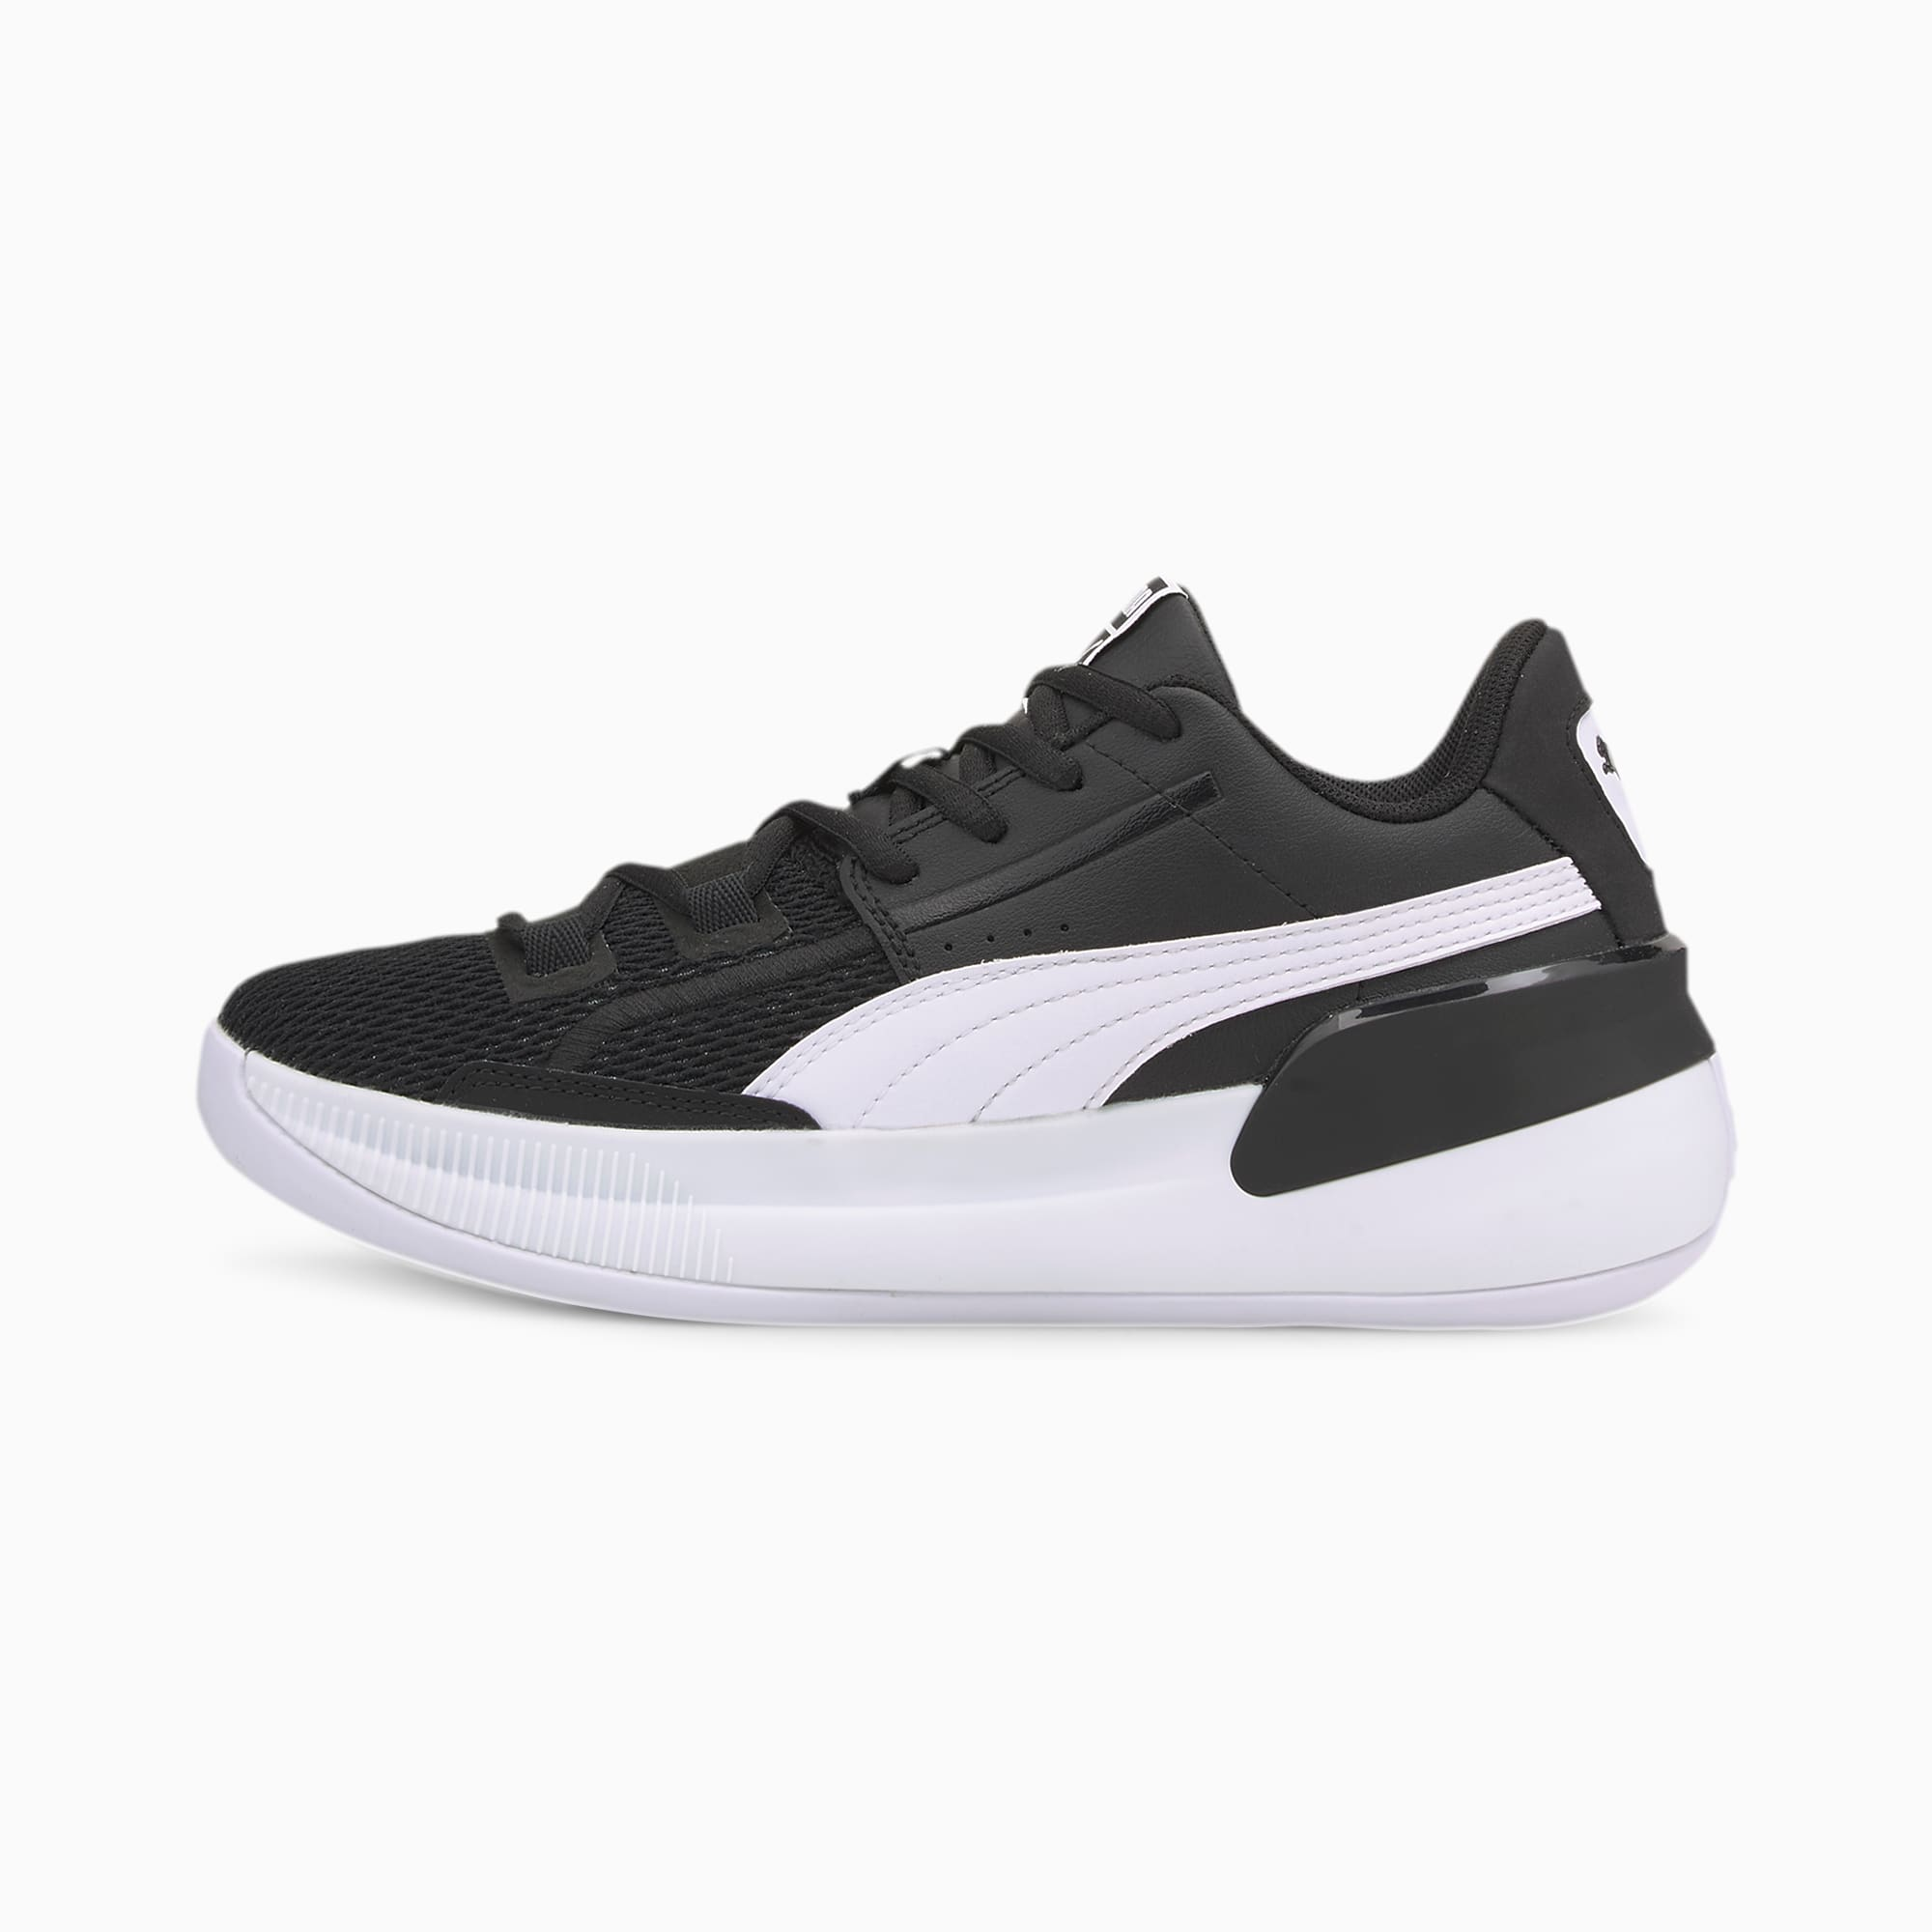 puma clyde hardwood shoes Promotions